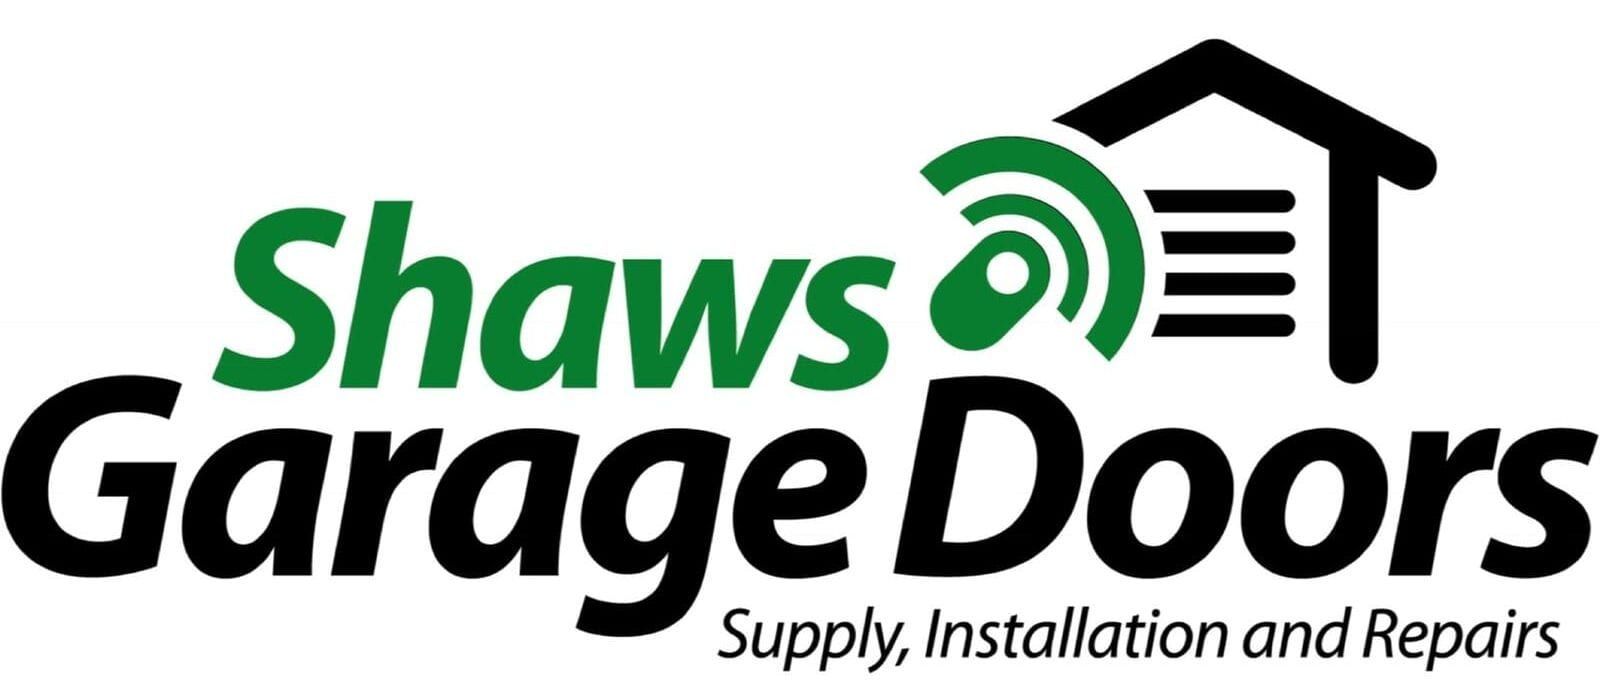 Shaws Garage Doors